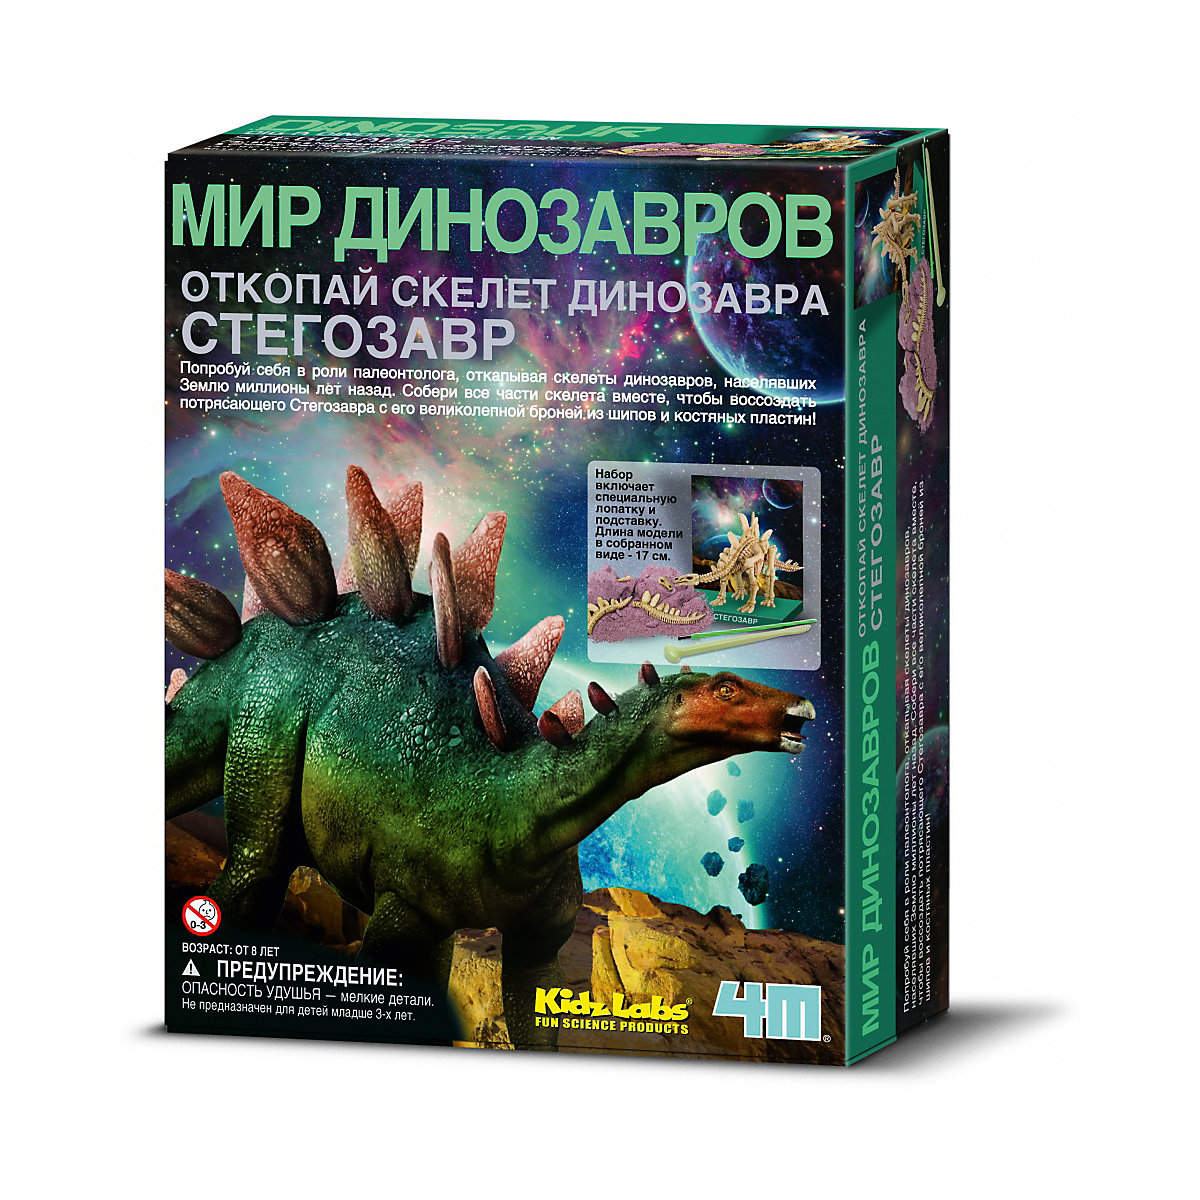 4M Science 4043547 s experiments for children  technology toy play game girl boy MTpromo цены